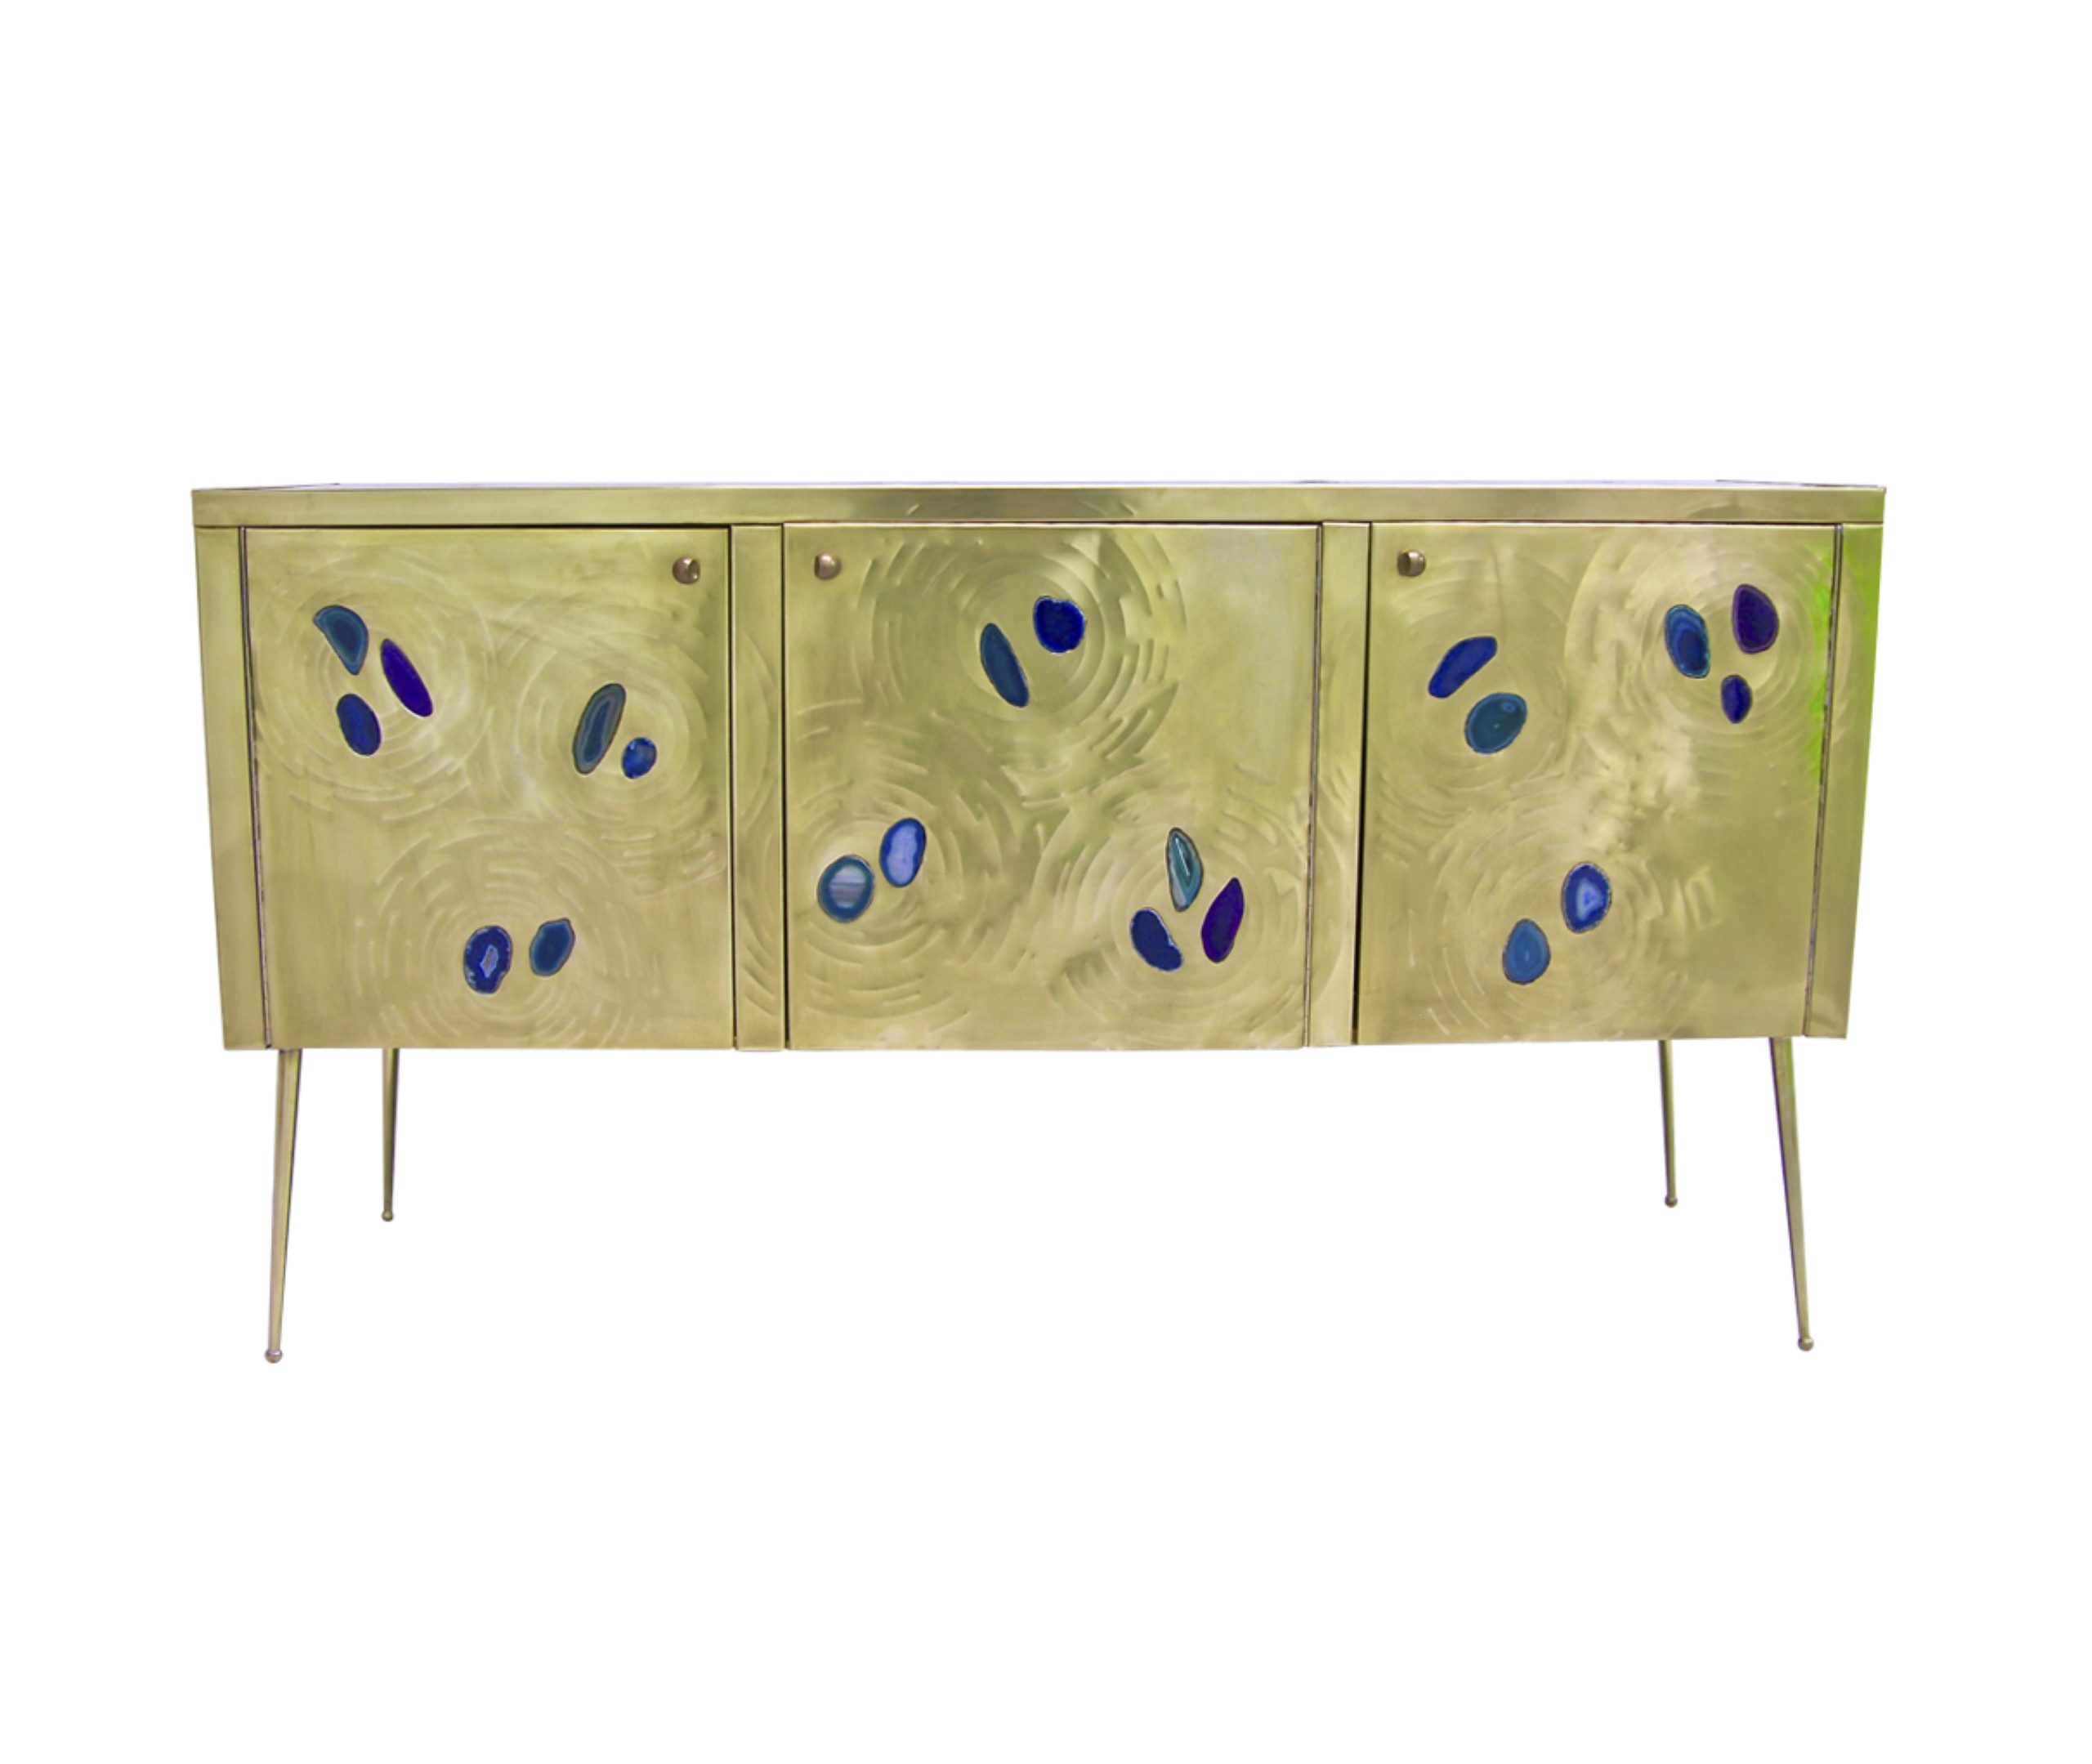 cosulich_interiors_and_antiques_products_new_york_design_center_Hand-Made-Gold-Credenza-Agate-scaled-1